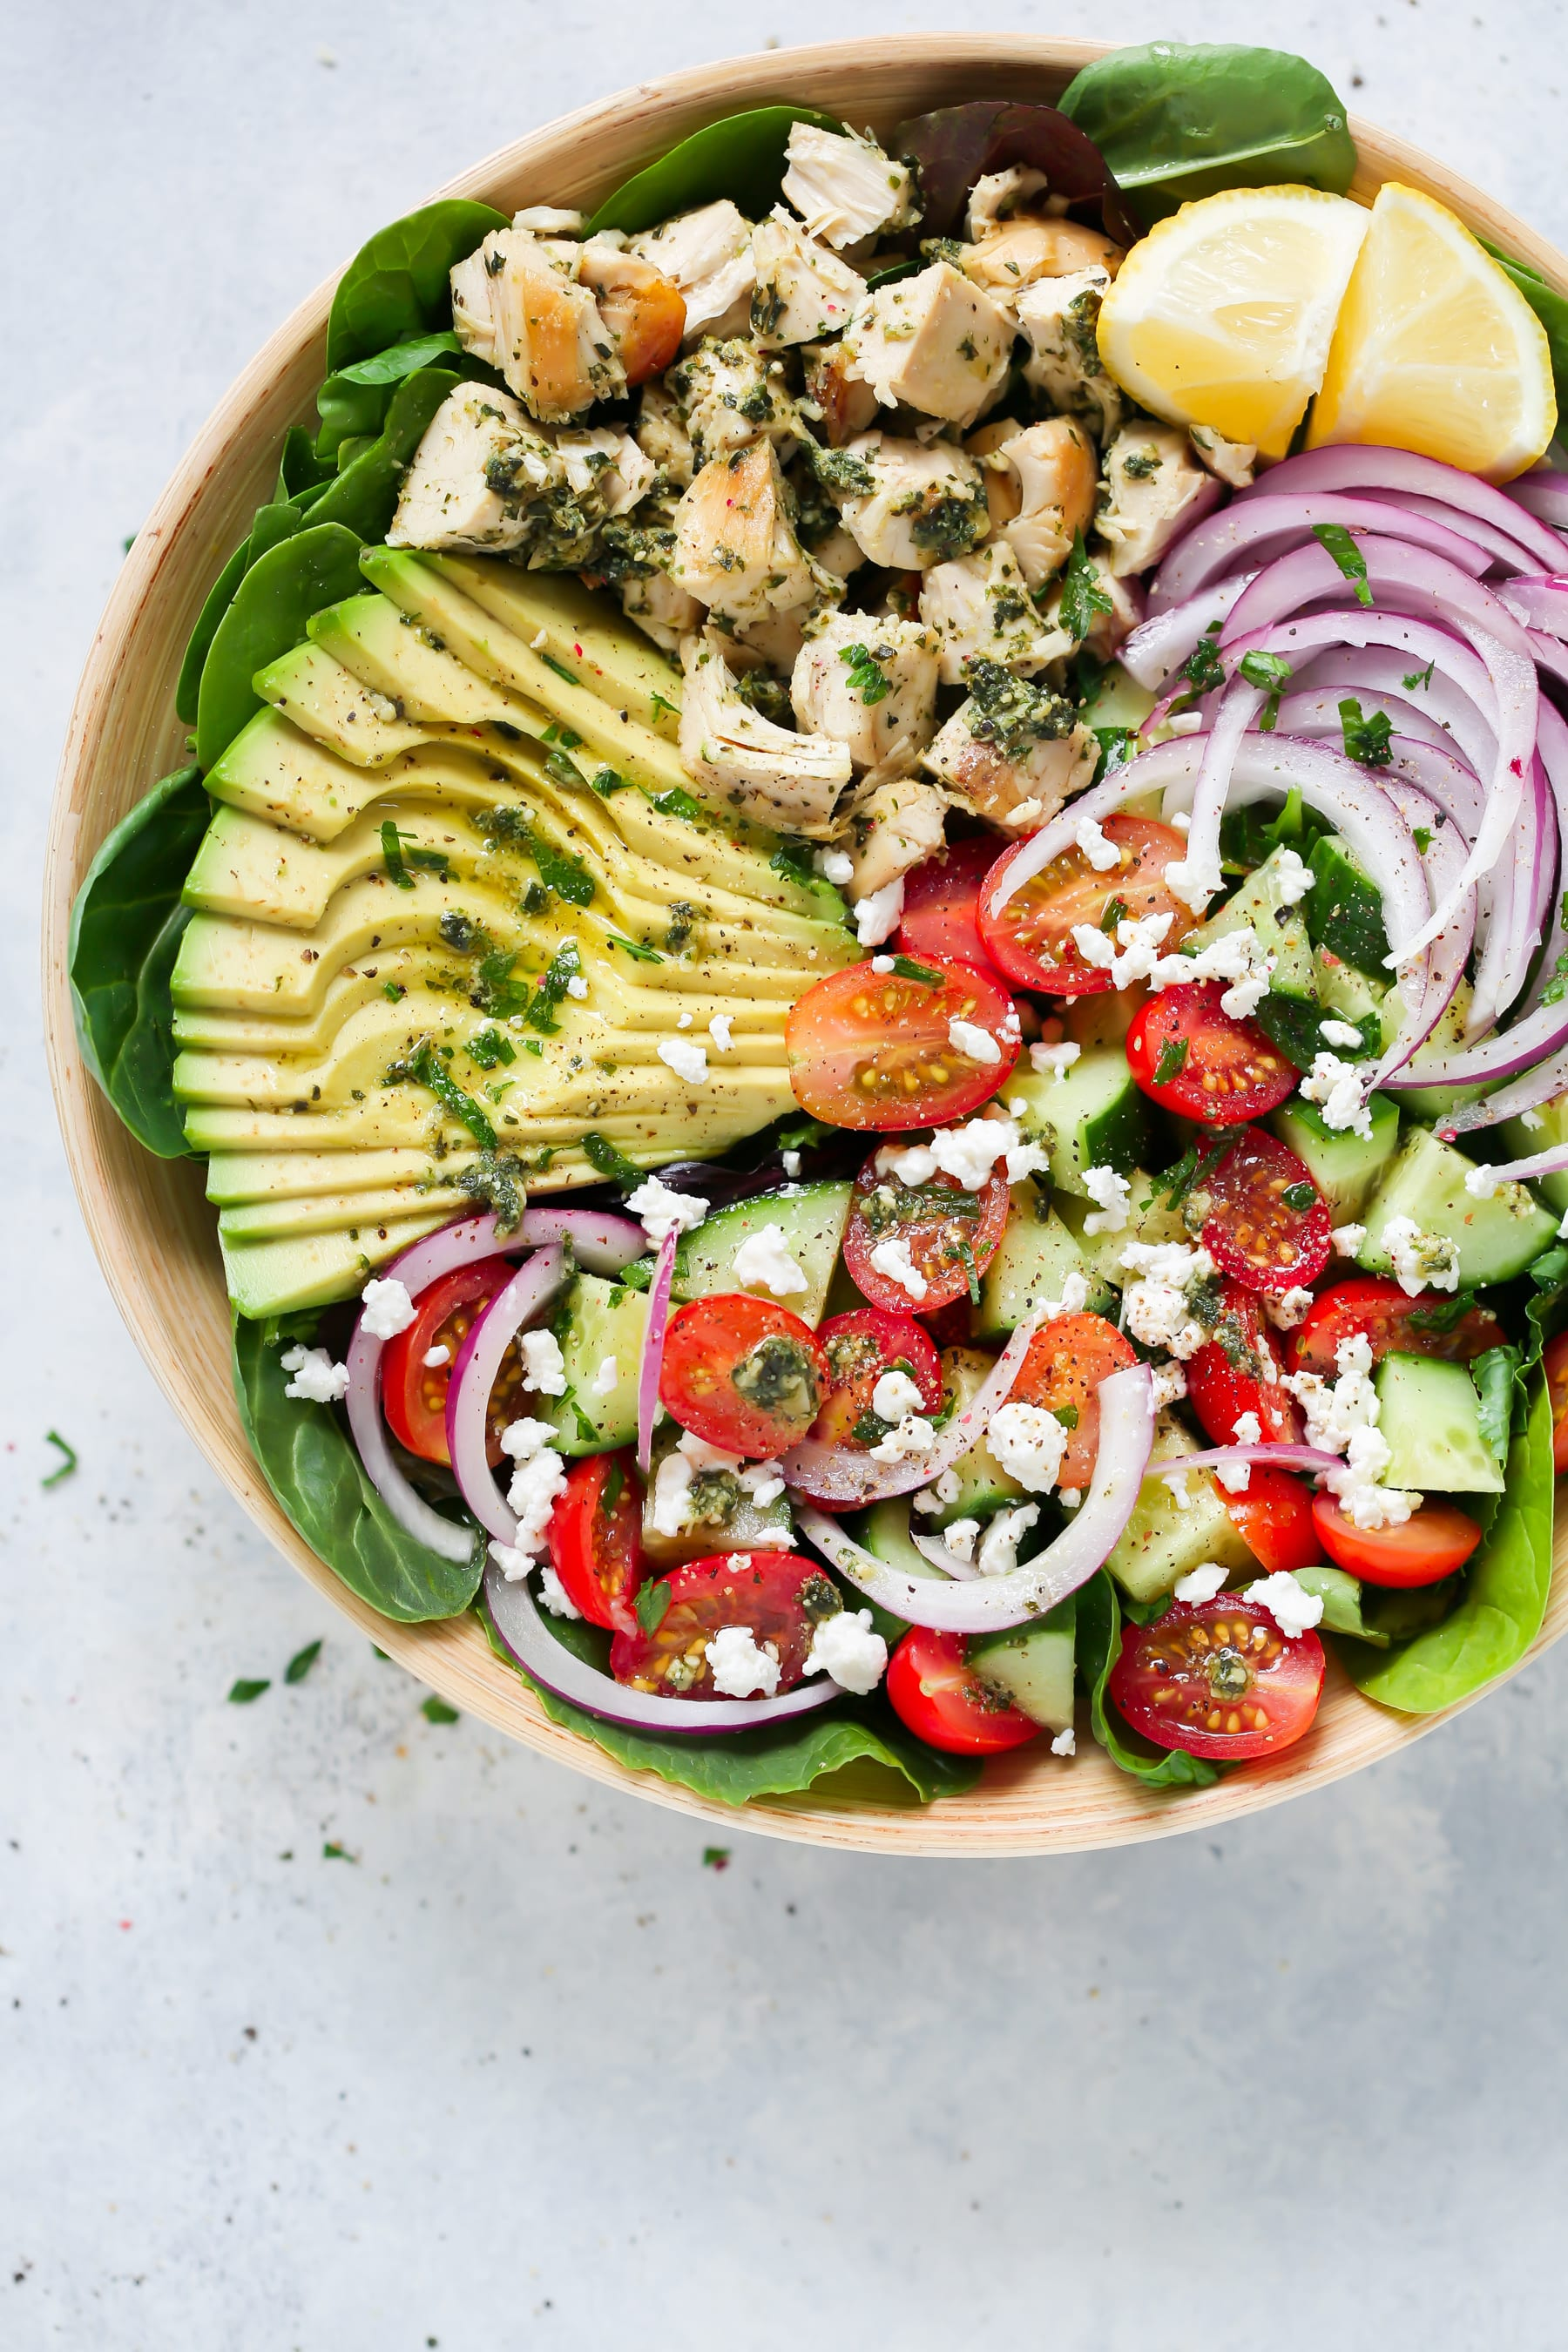 is salad good for low carb diet